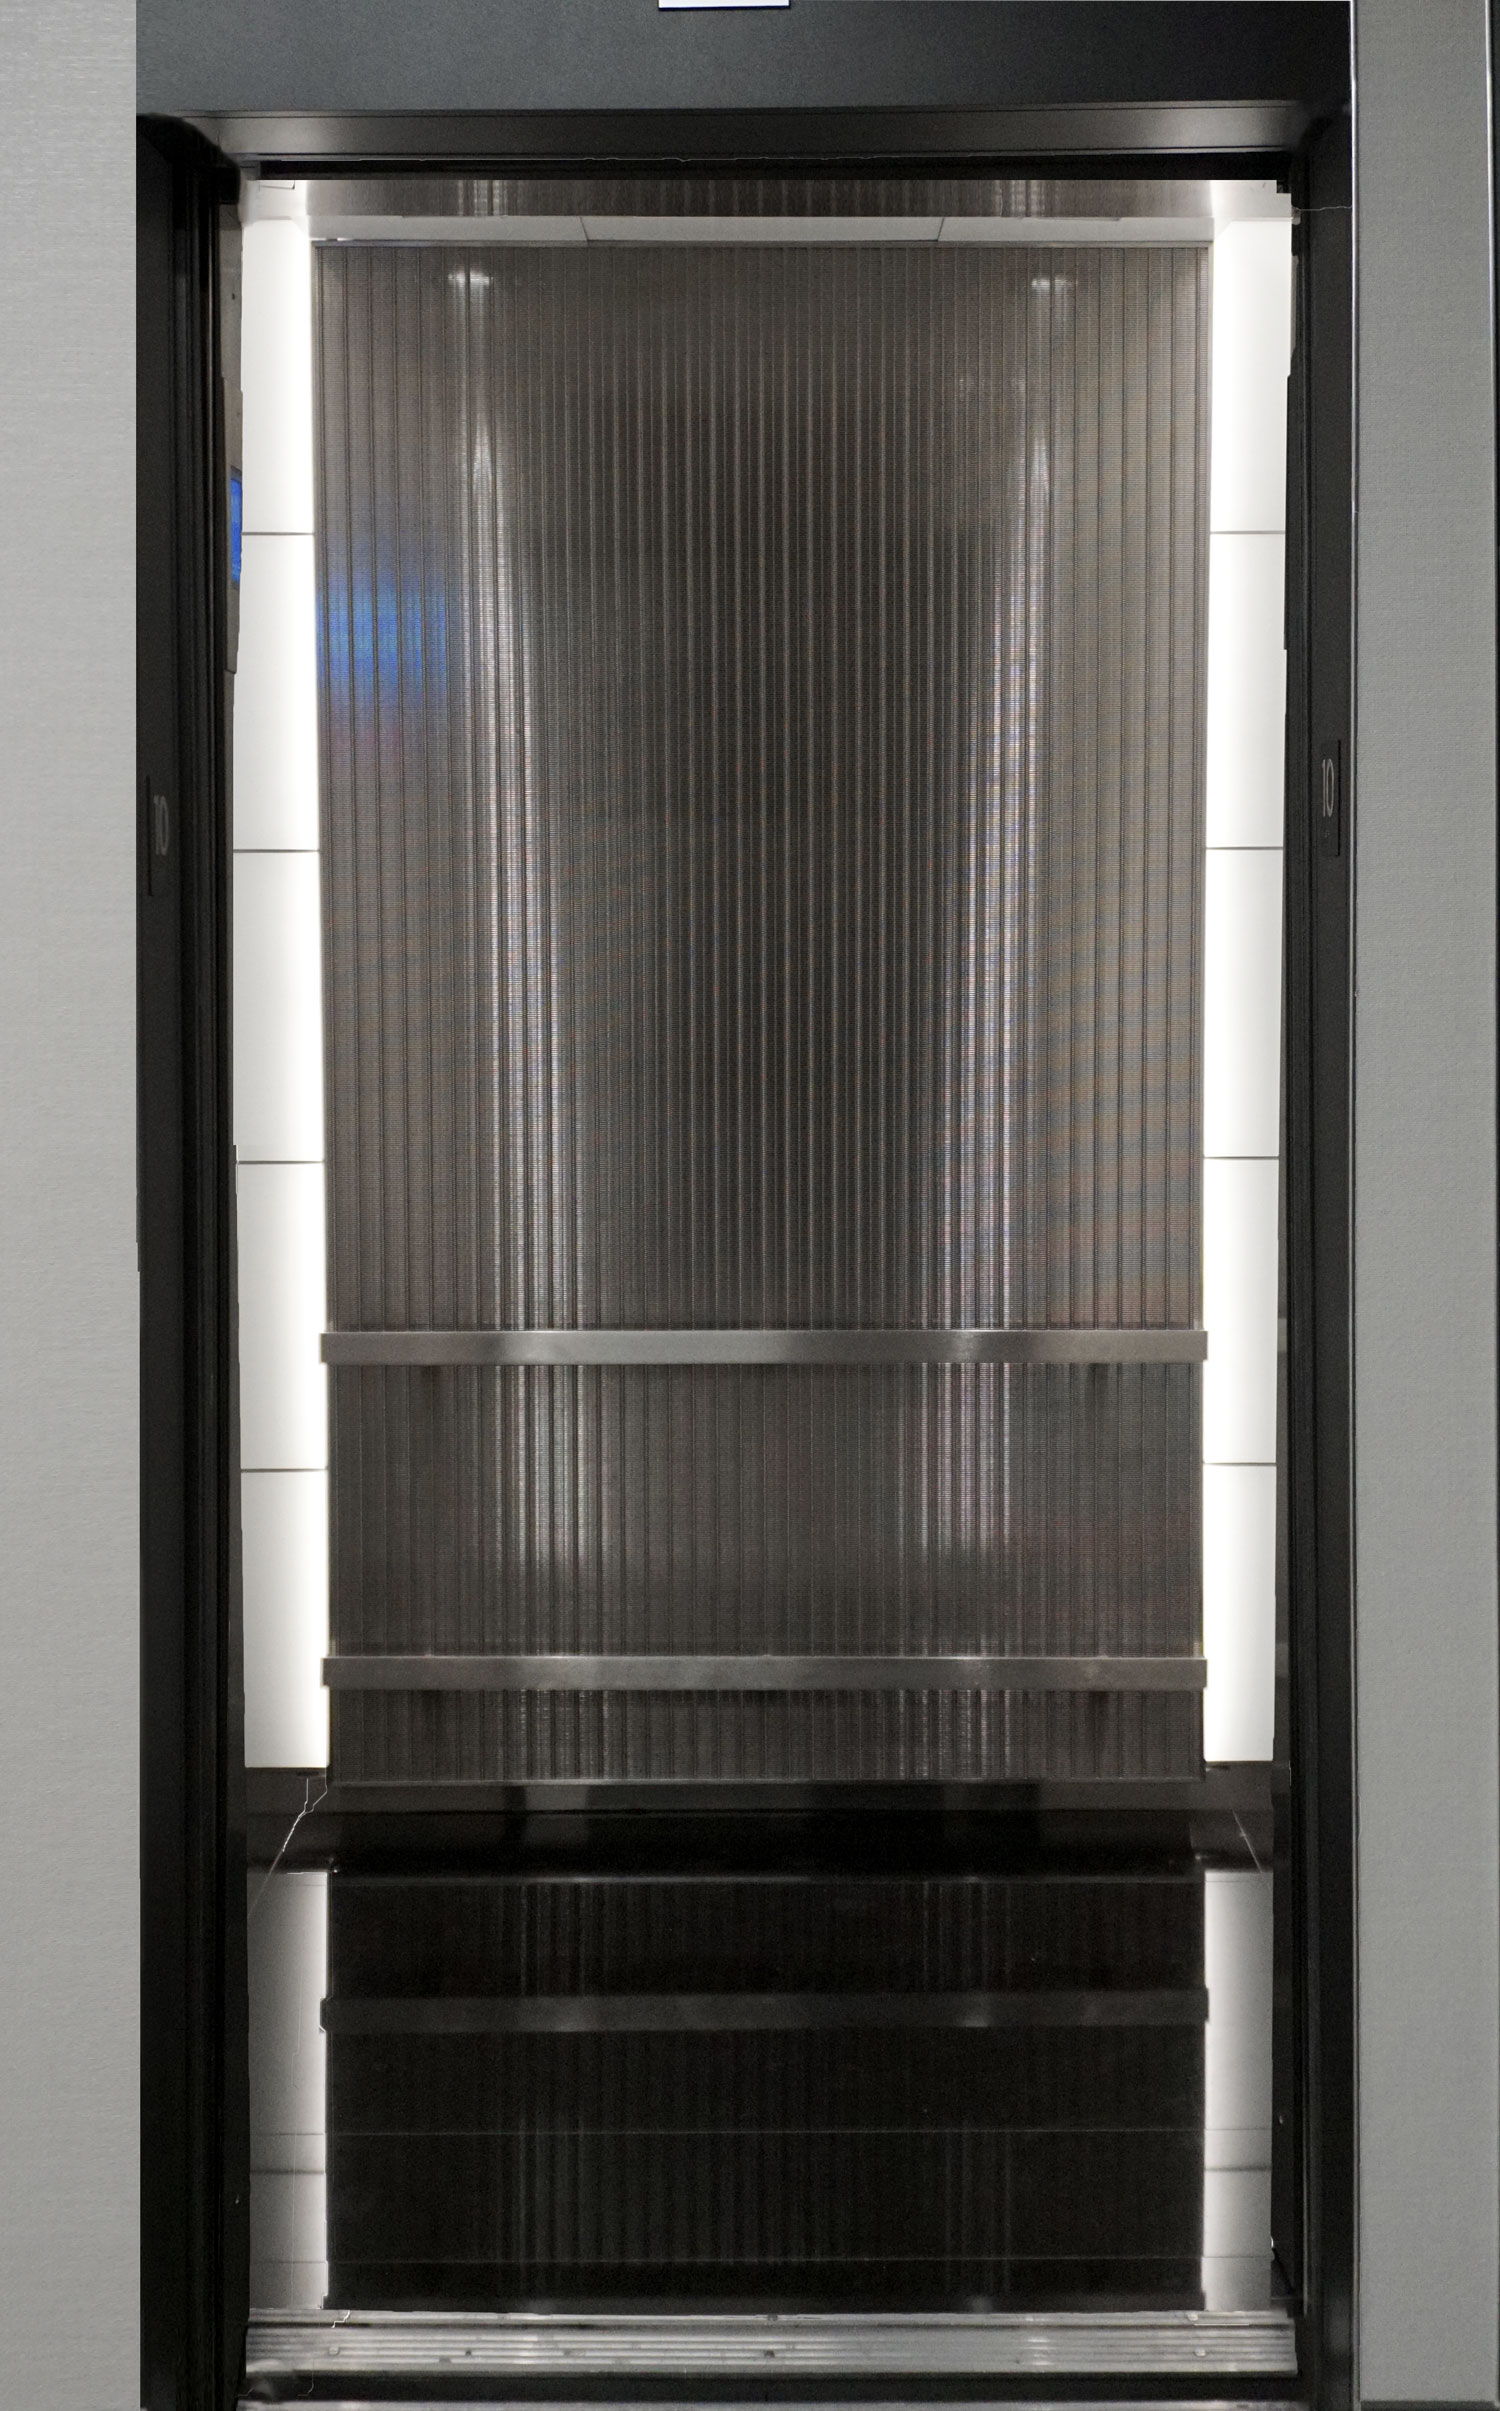 Banker Wire's DF-6 adds a sophisticated look while still providing durability as elevator cladding.